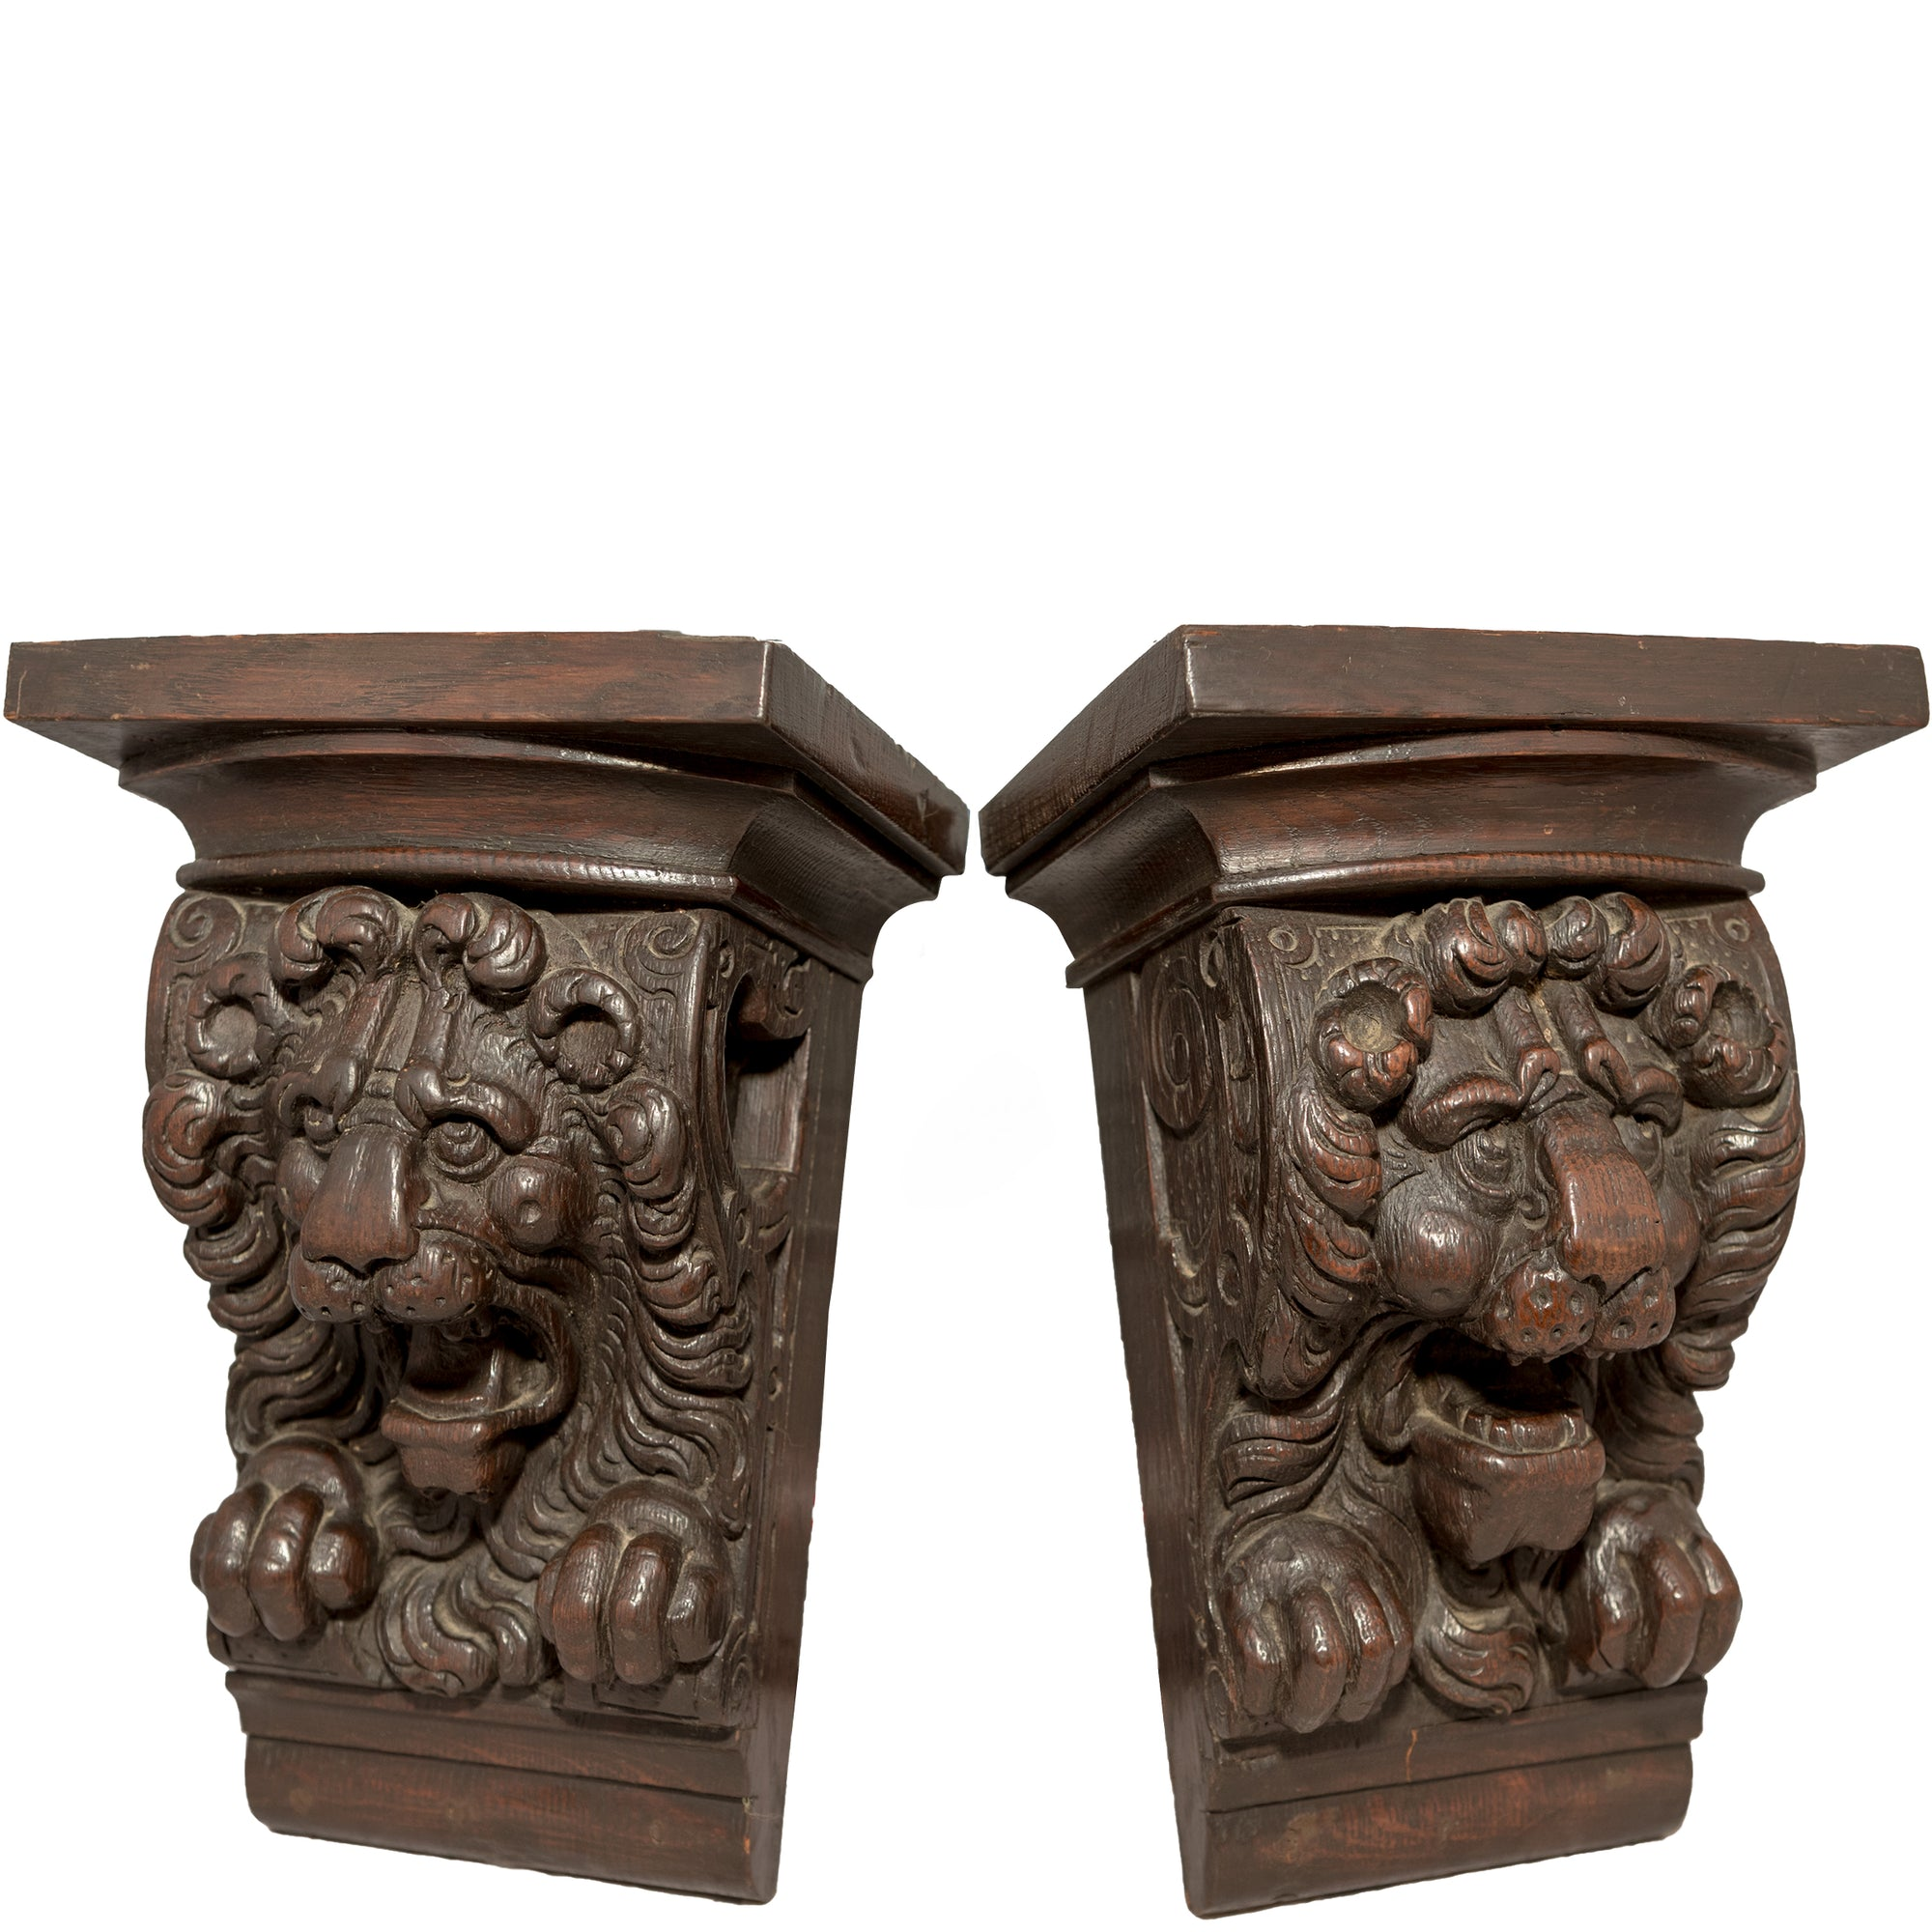 Antique Carved Wooden Gothic Lions Head Corbels